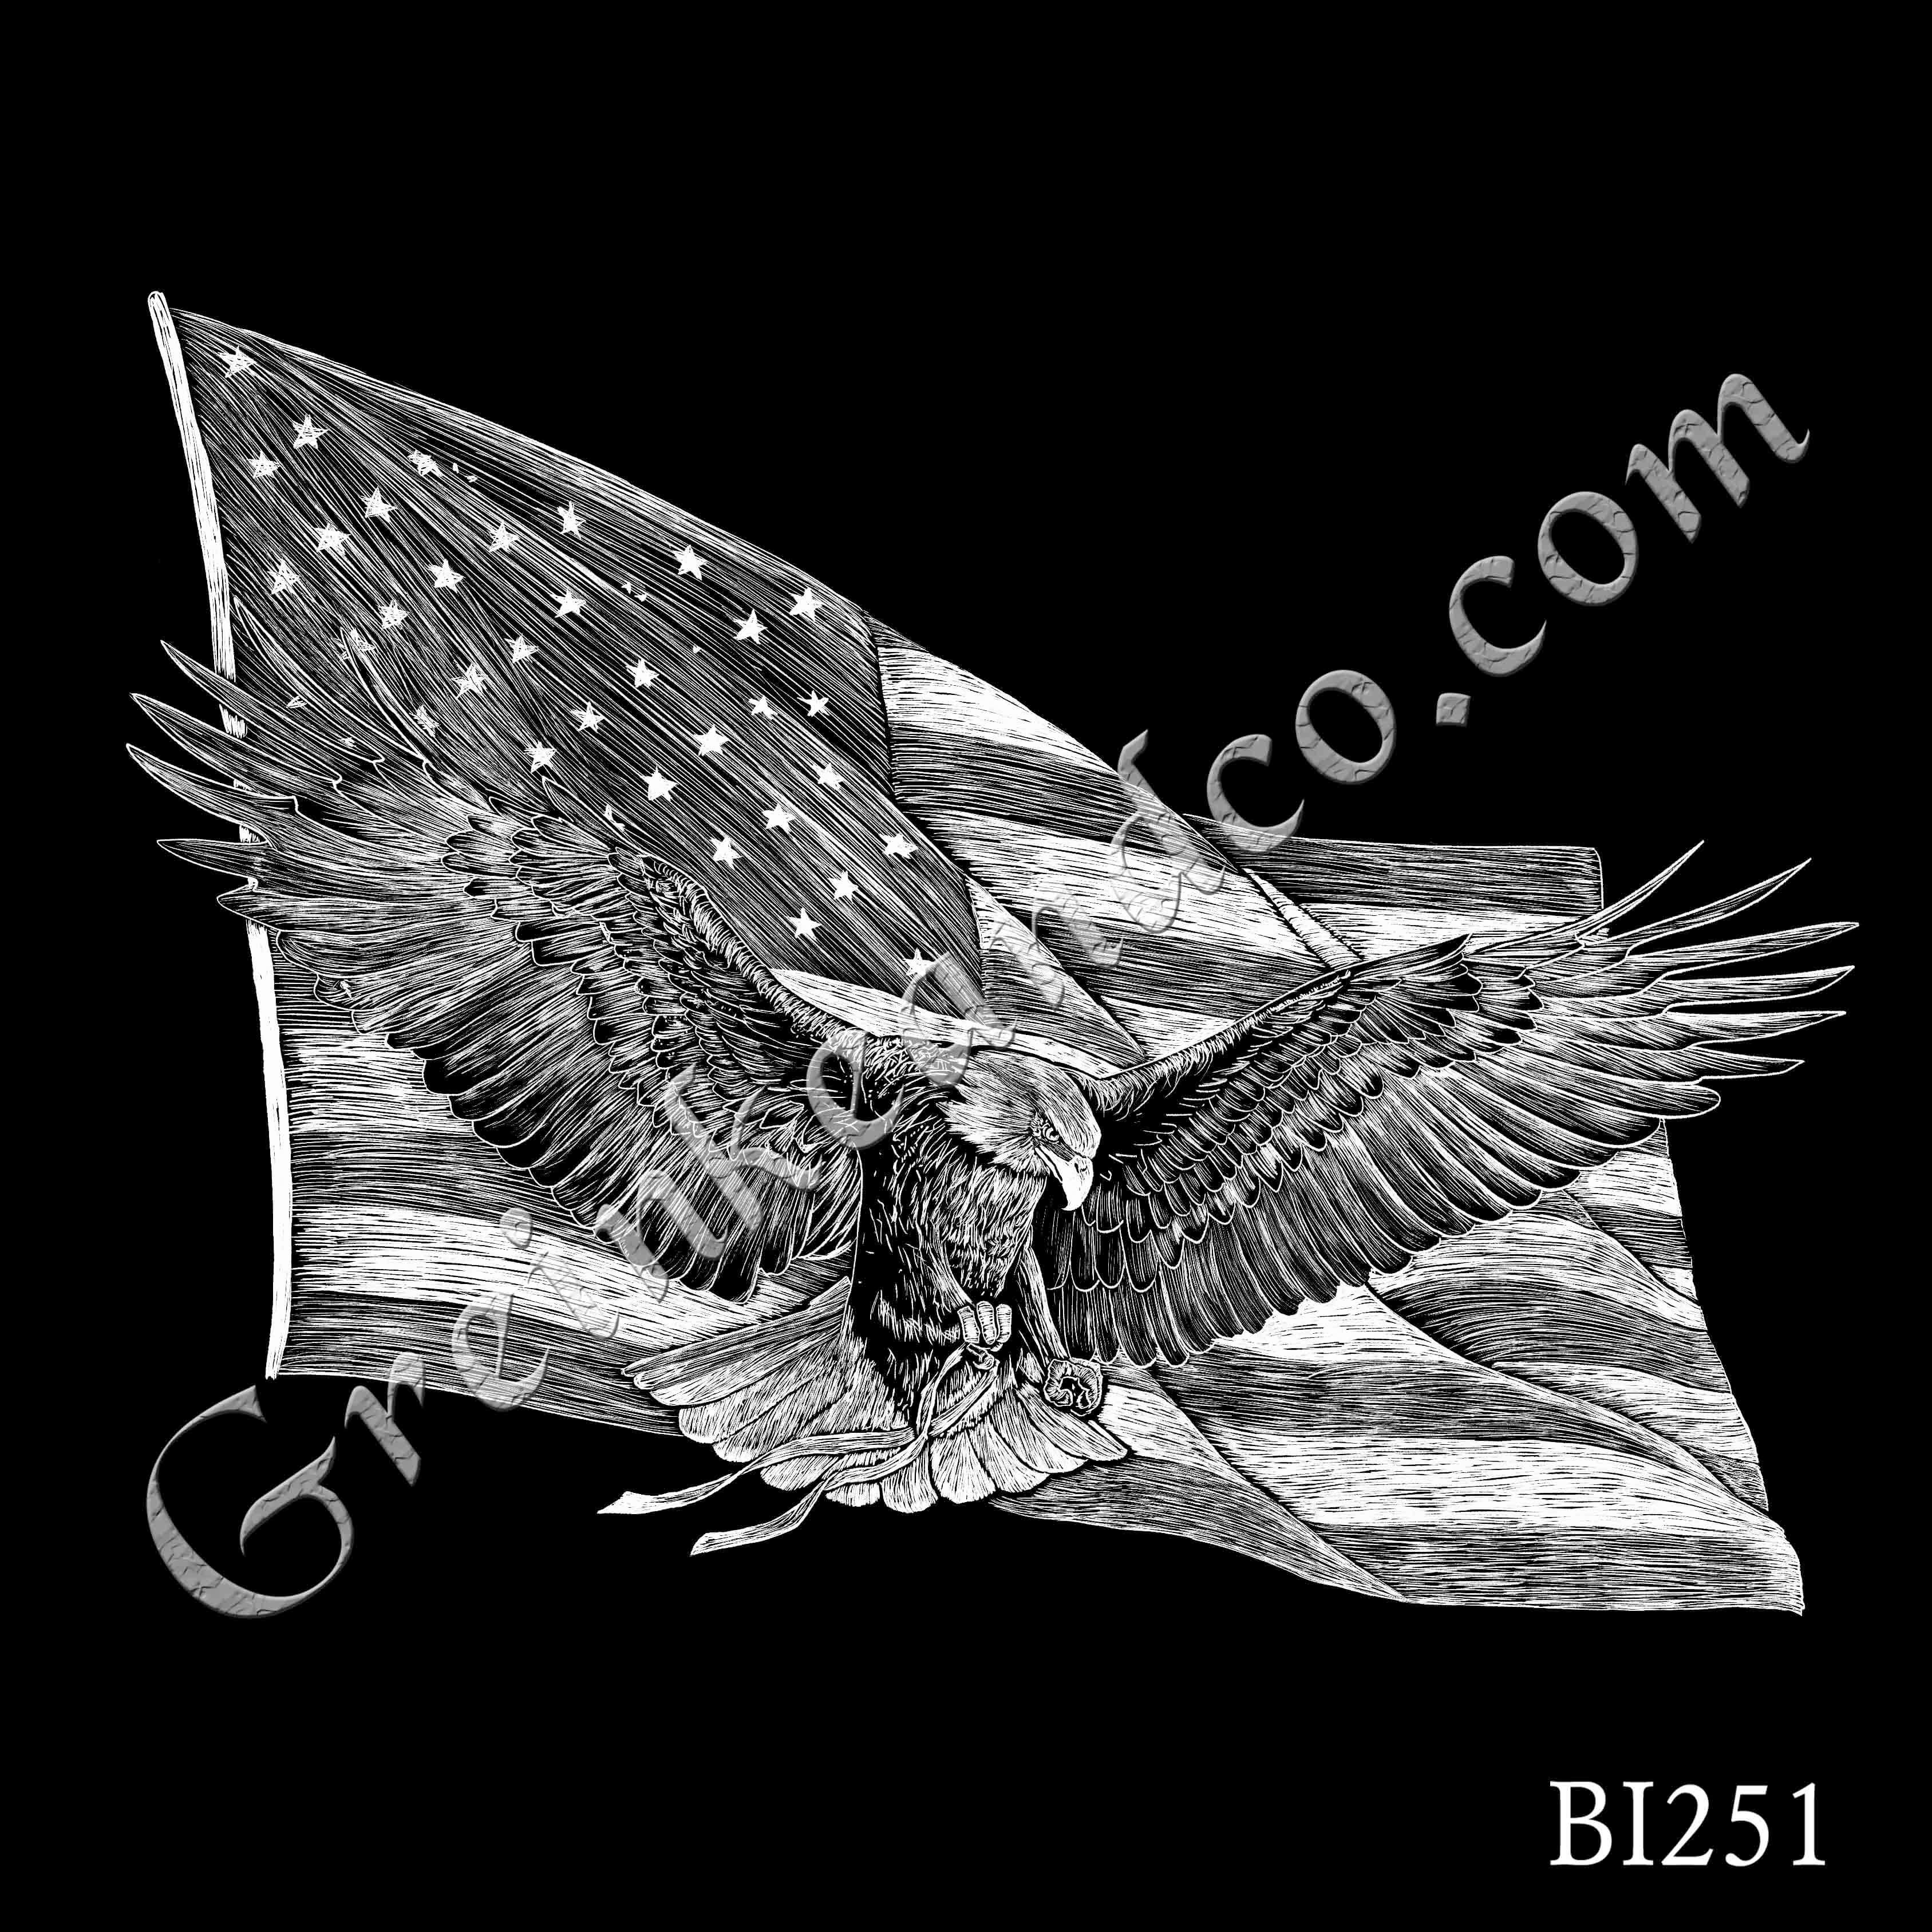 BI251 - Eagle and Flag v2